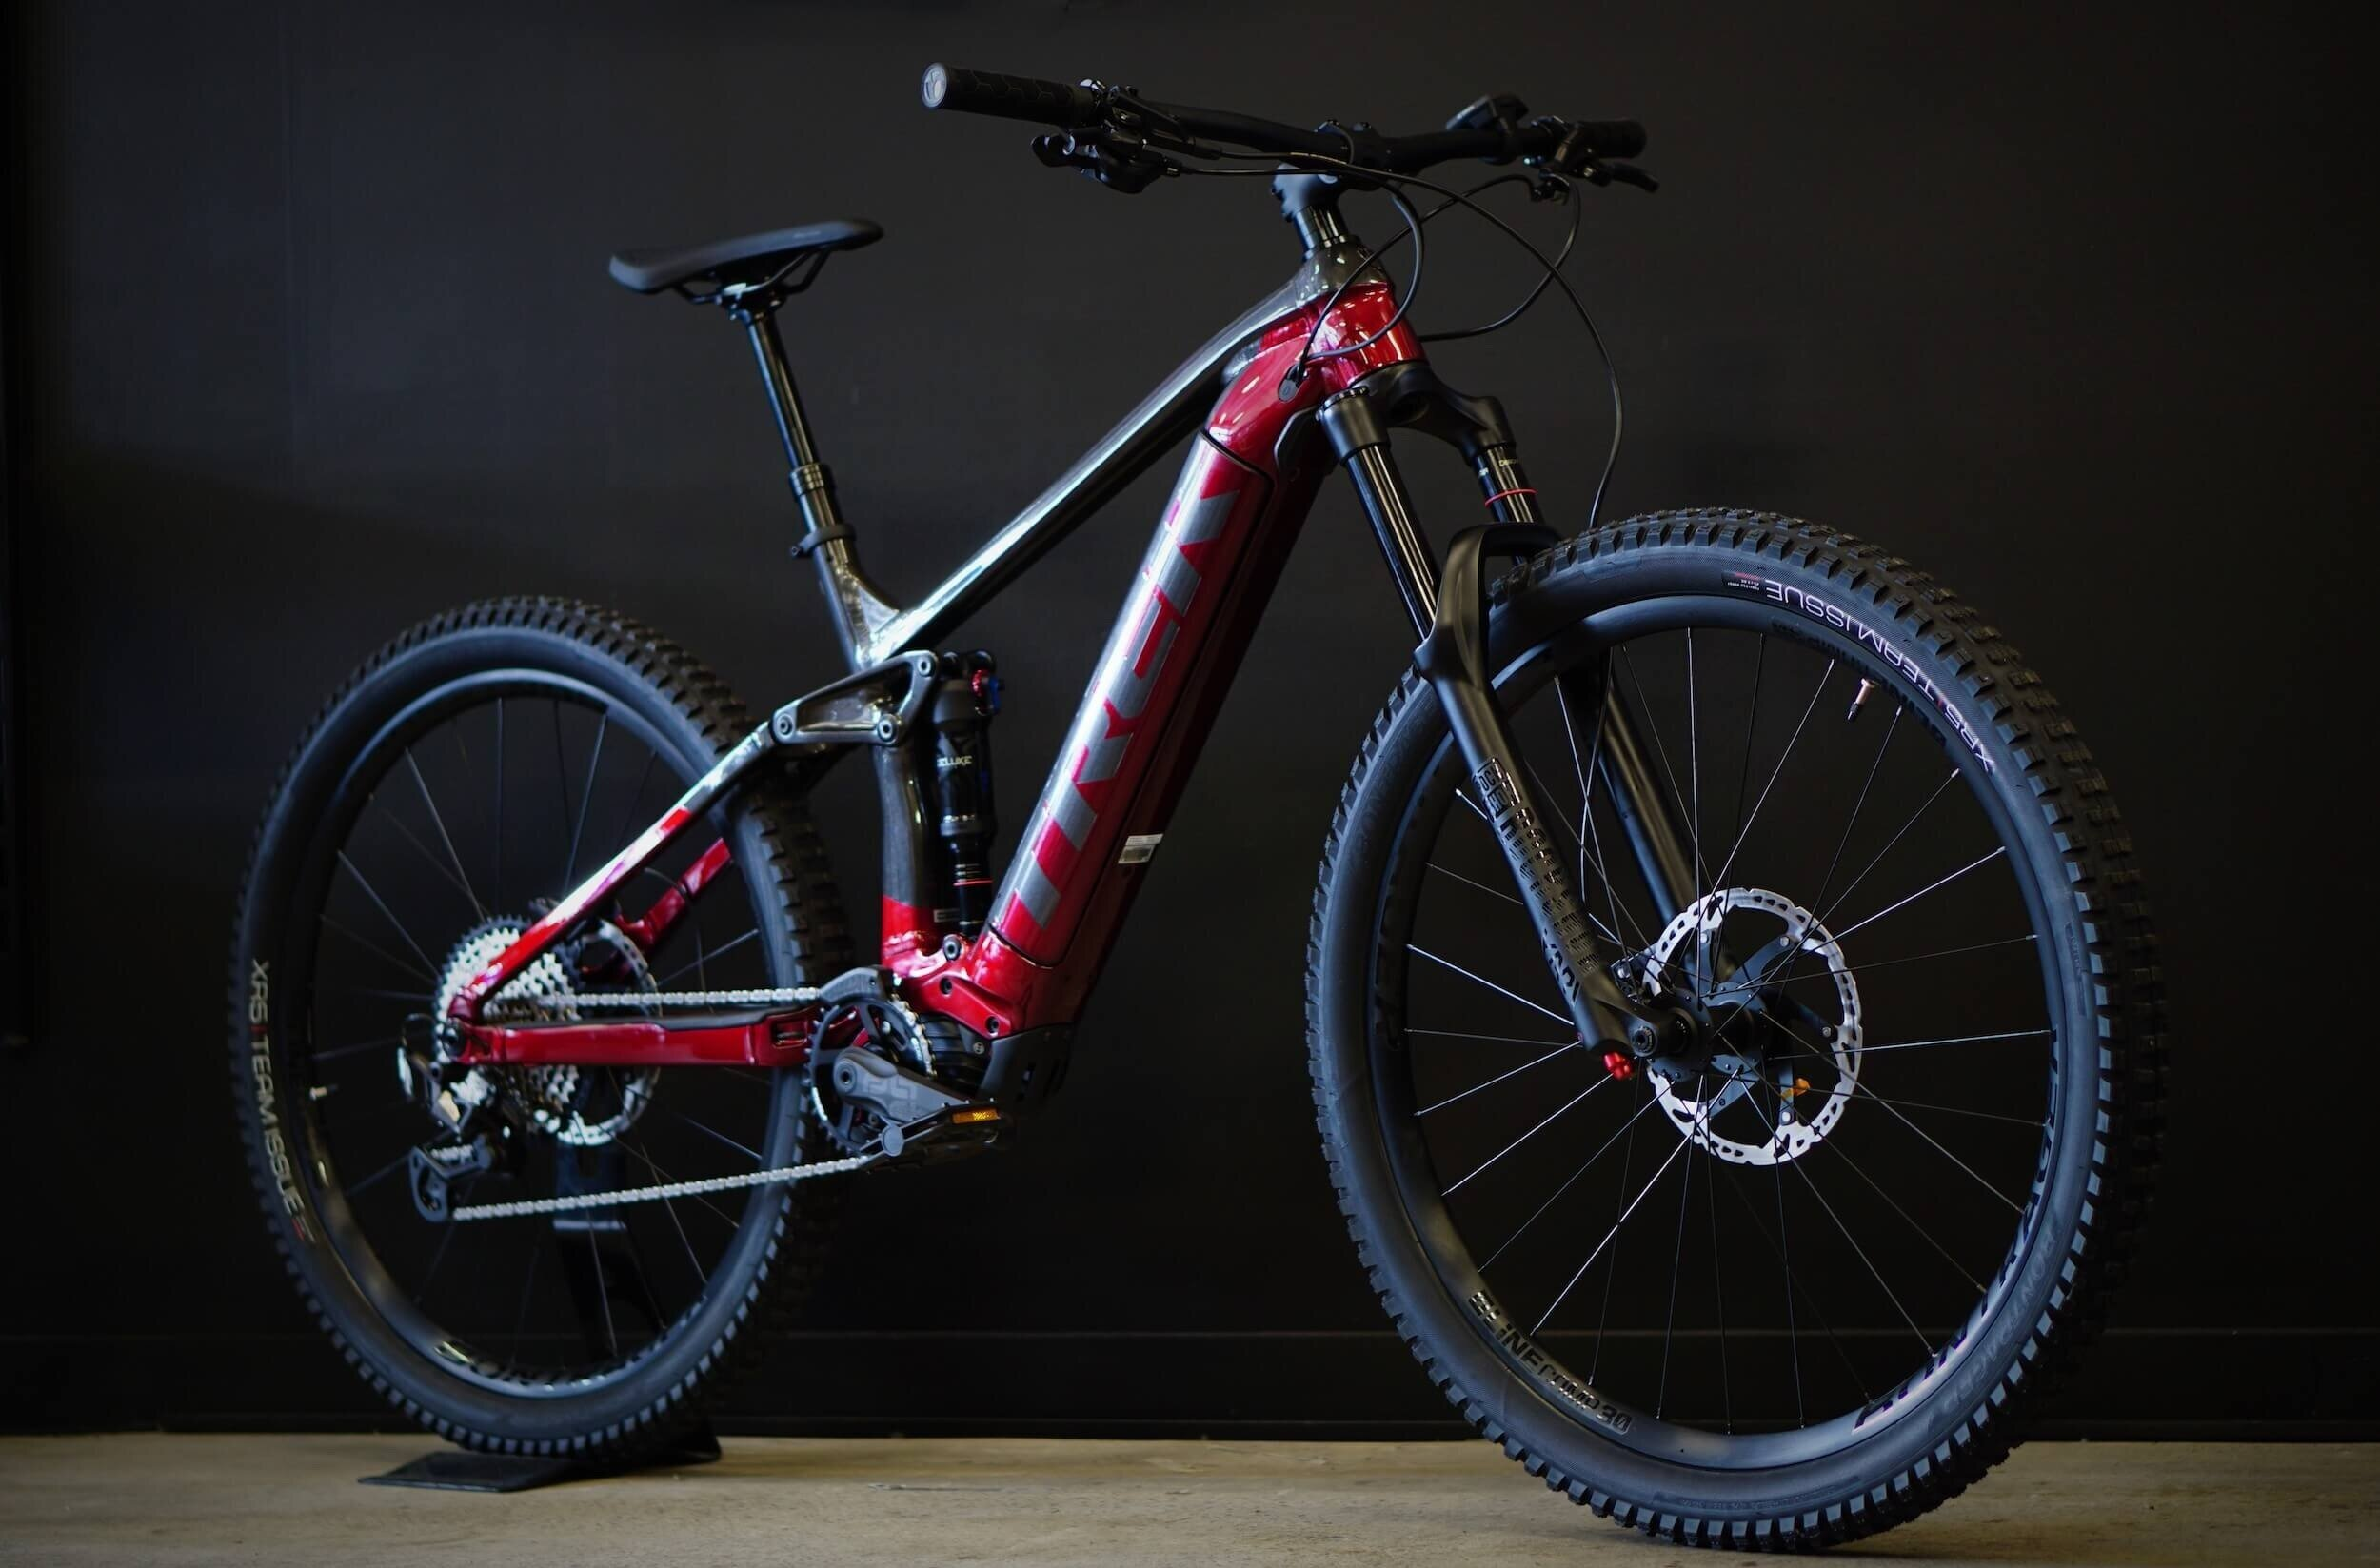 Trek eBike on display at CYCO bike shop